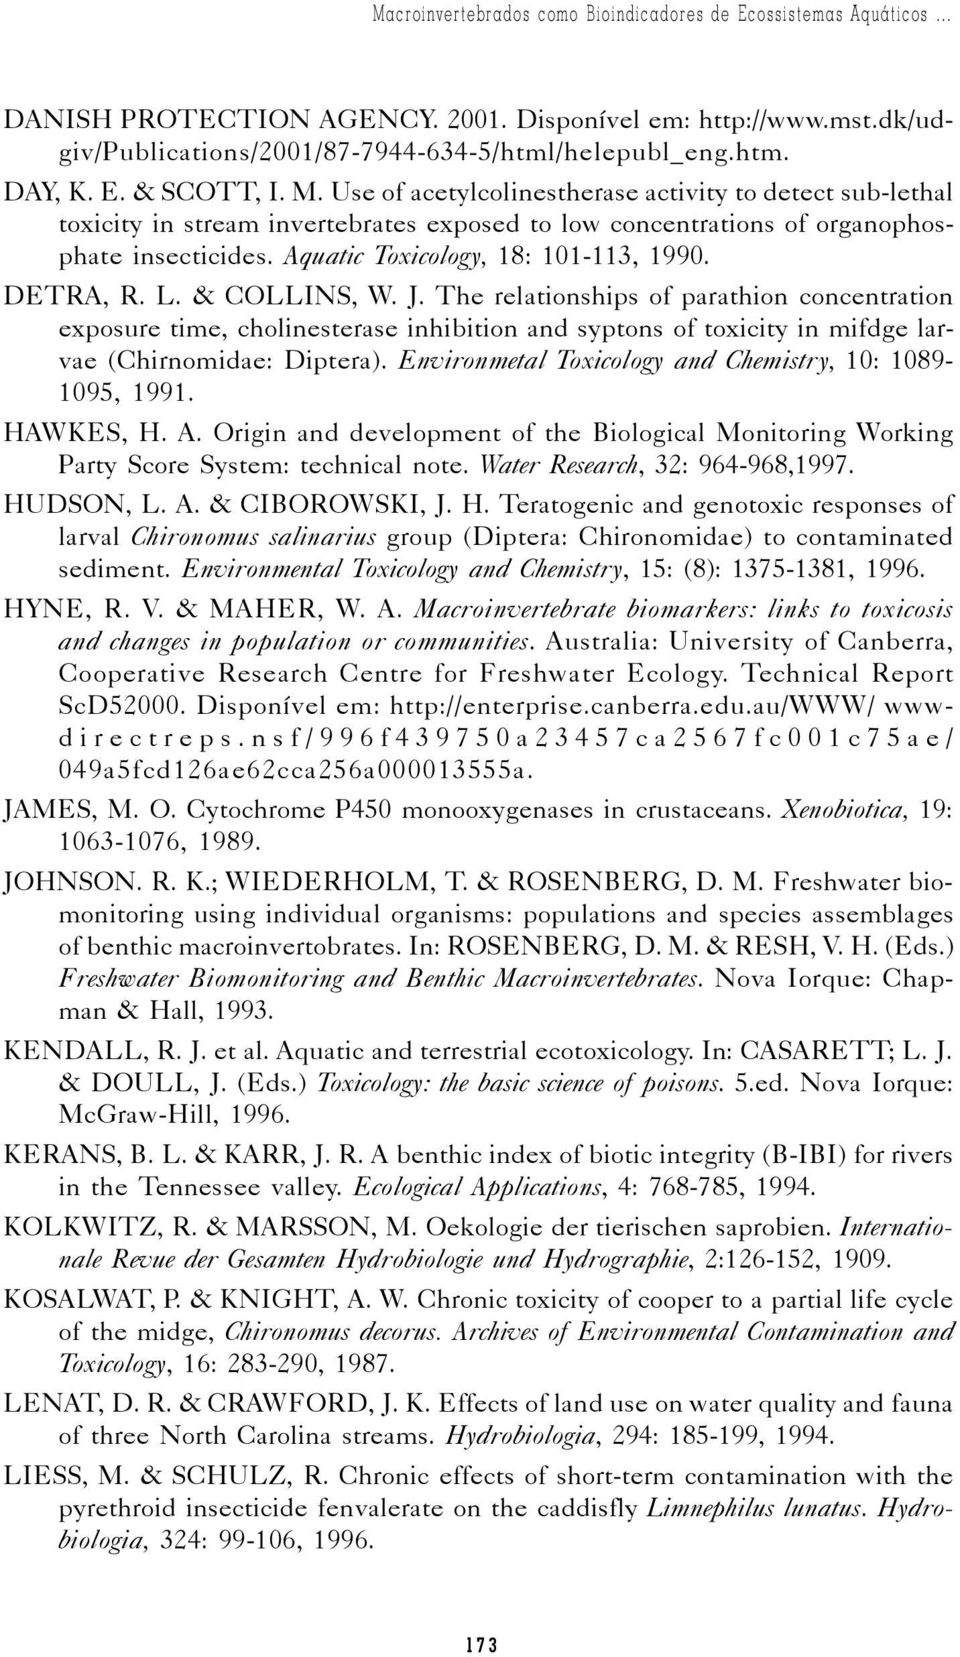 use cholinesterase activity environmental monitoring Use of cholinesterase activity in monitoring chlorpyrifos exposure of steer cattle after topical administration.